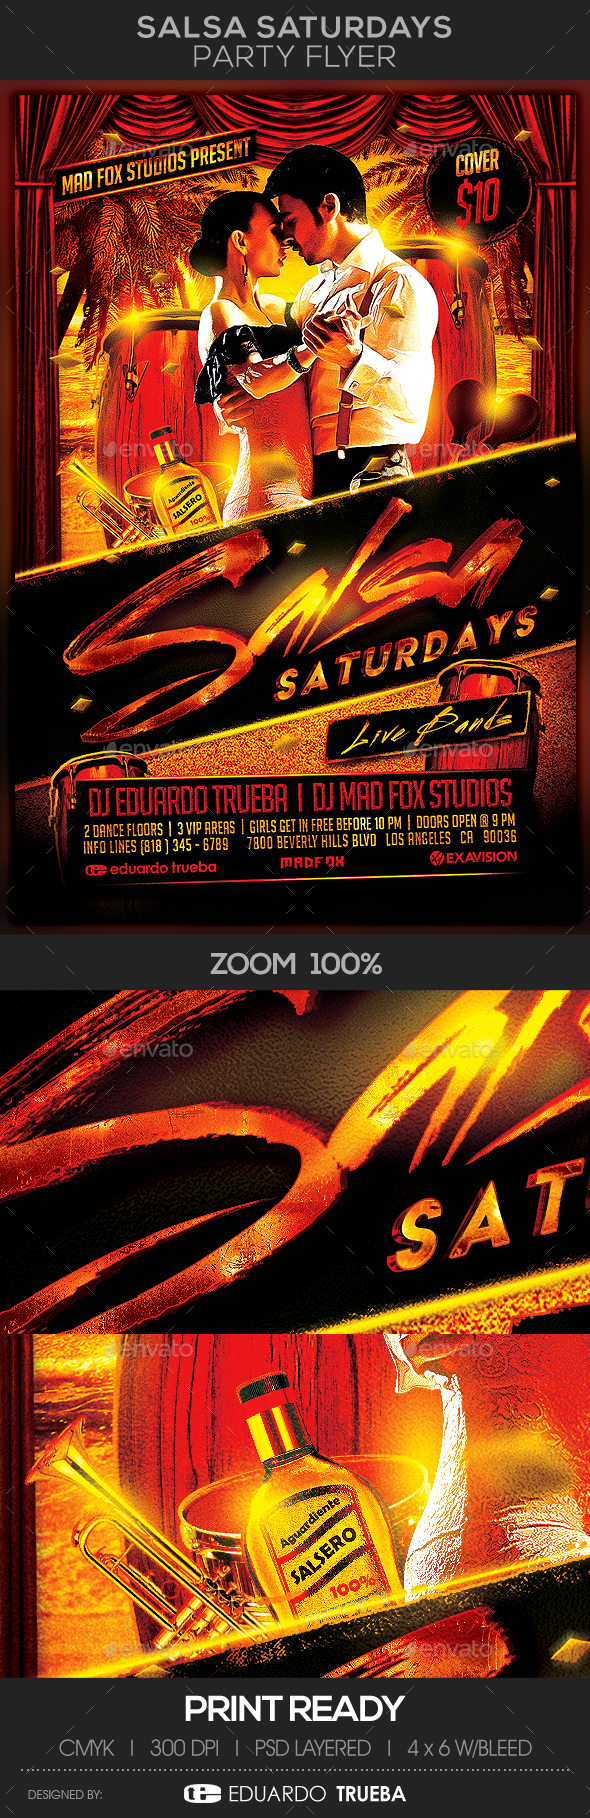 Salsa Saturdays with Live Bands Party Flyer - Events Flyers